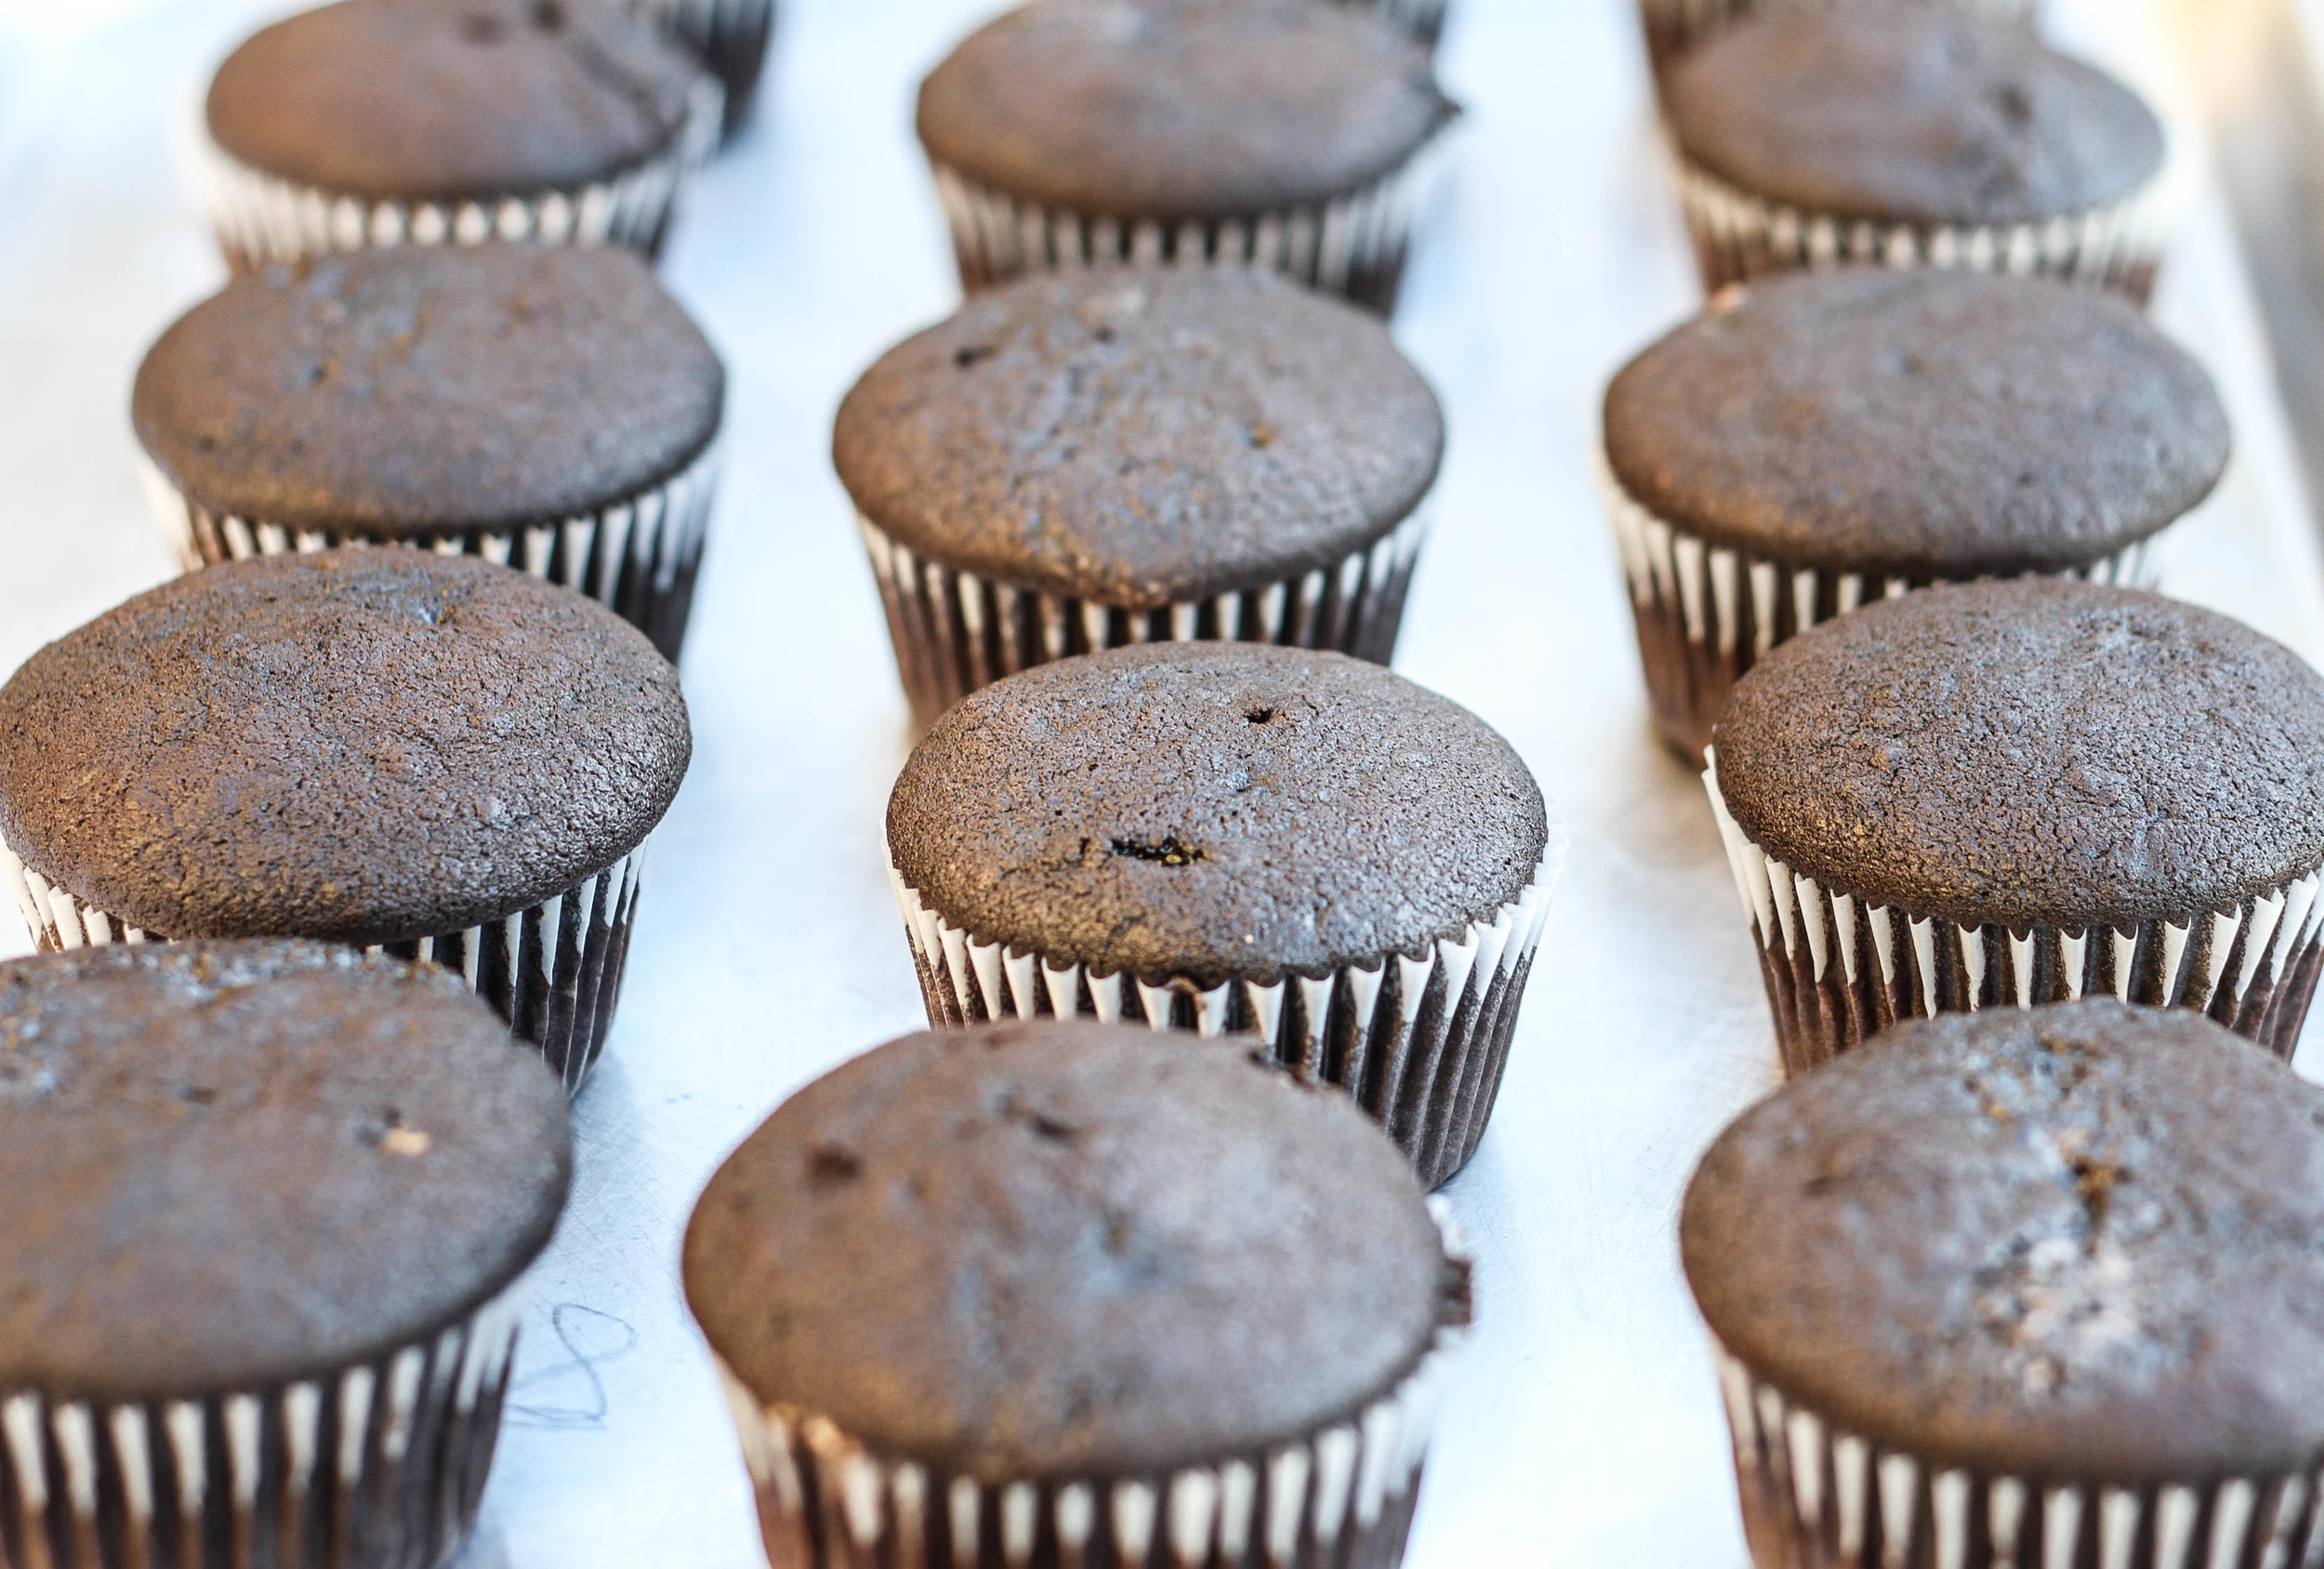 Mocha/Coffee Cupcakes Ready for Frosting